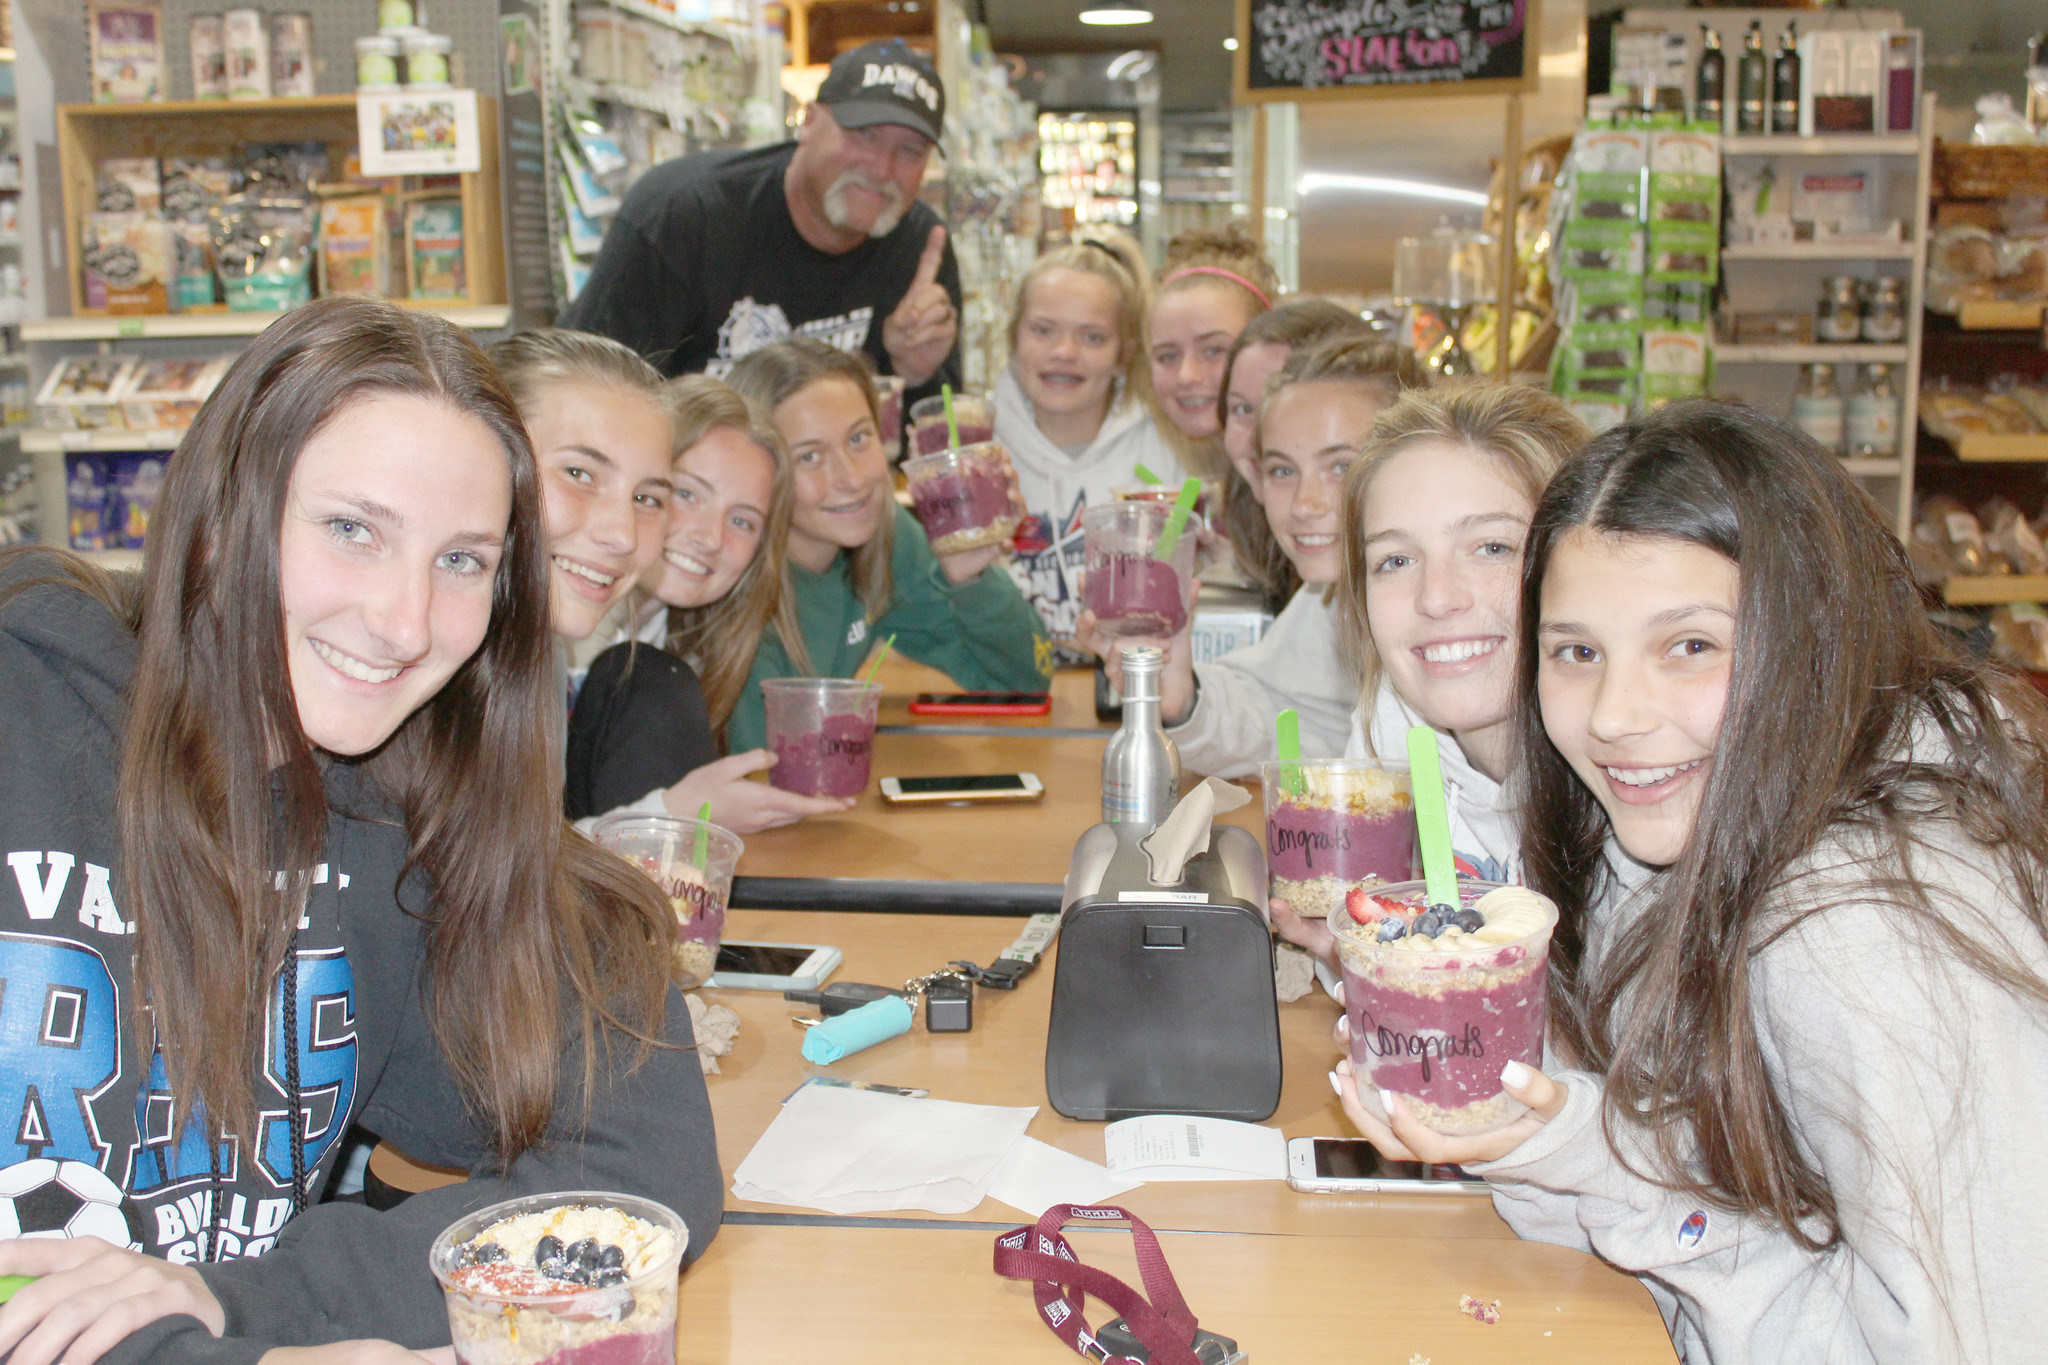 Ramona Family Naturals owners Victoria and Robert Bradley treat the Bulldog soccer players to acai bowls after they won the division championship.